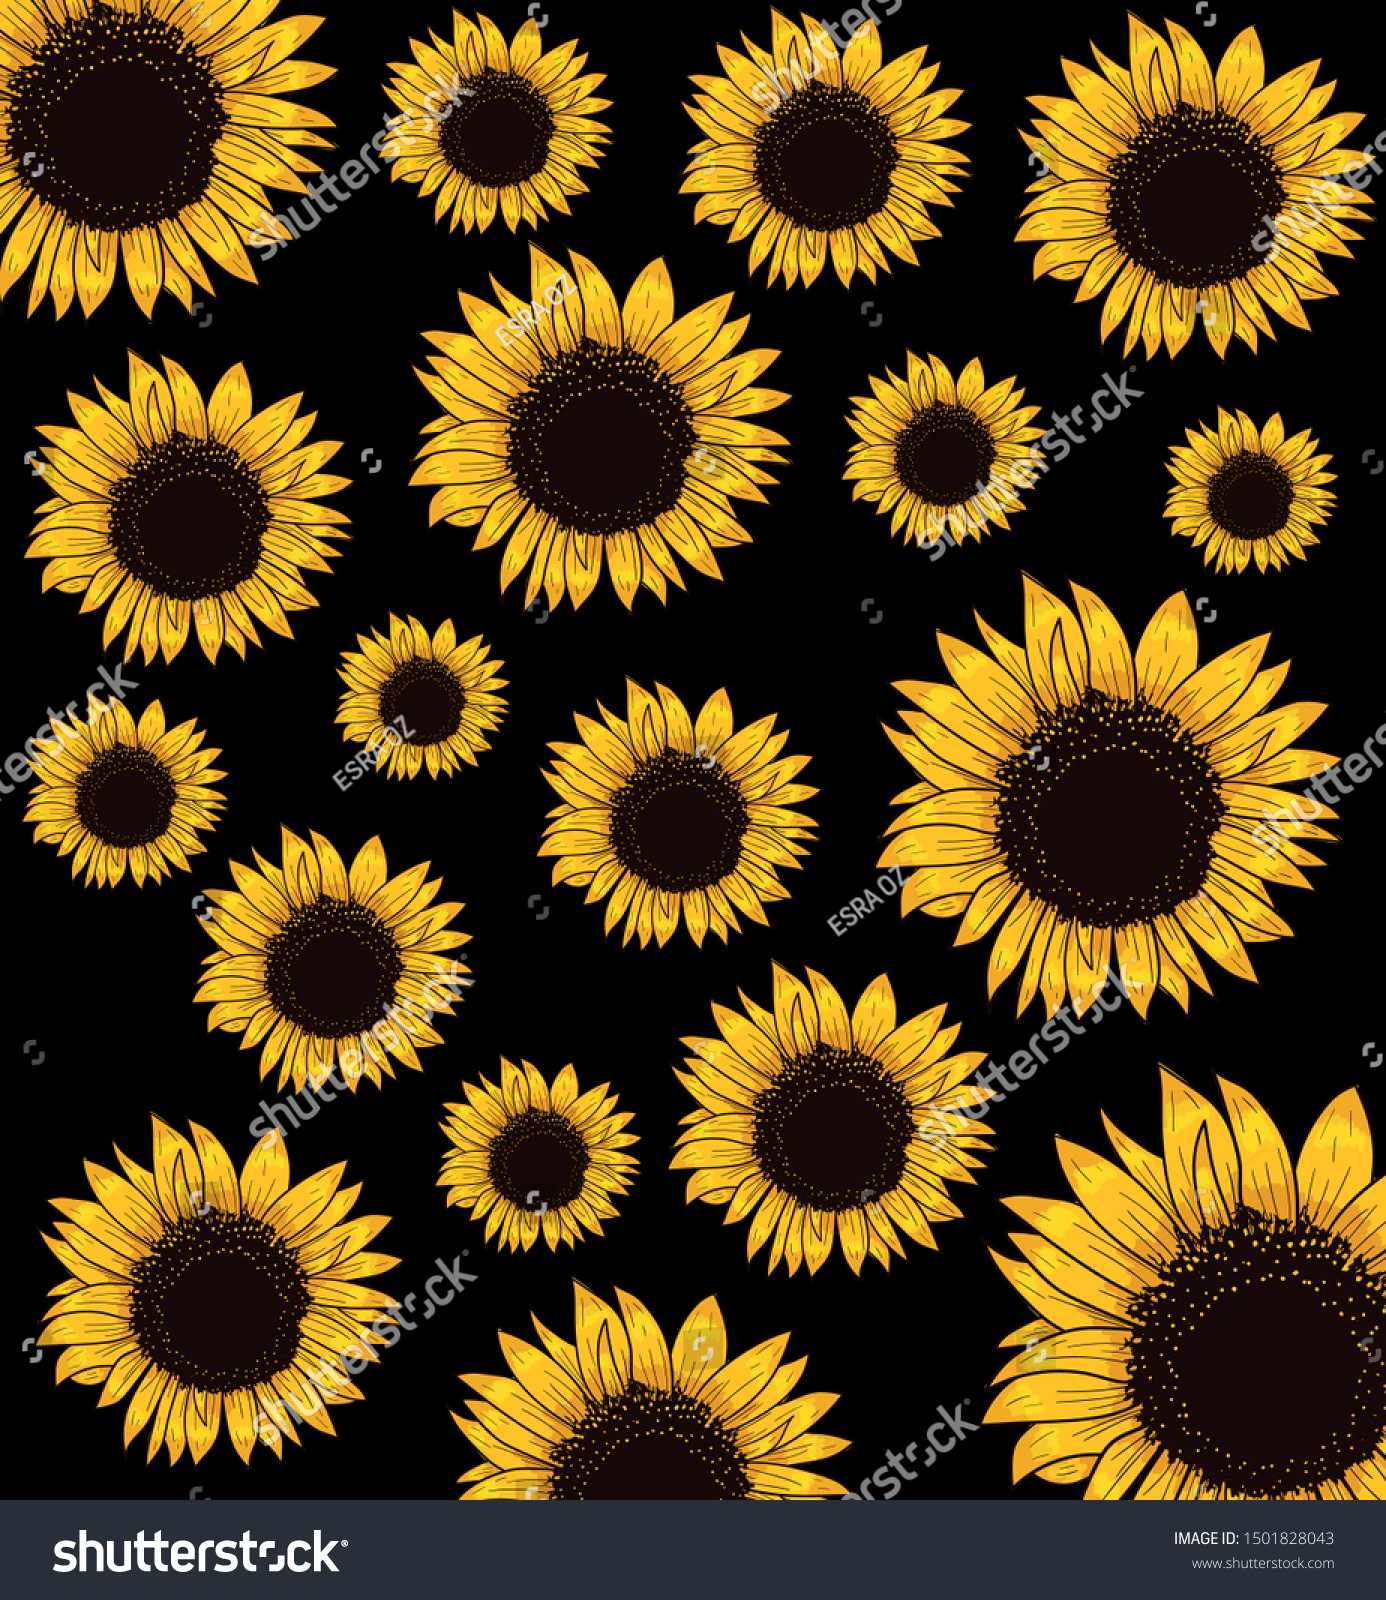 stock vector pattern with sunflowers on a black background vector illustration vekt r 1501828043